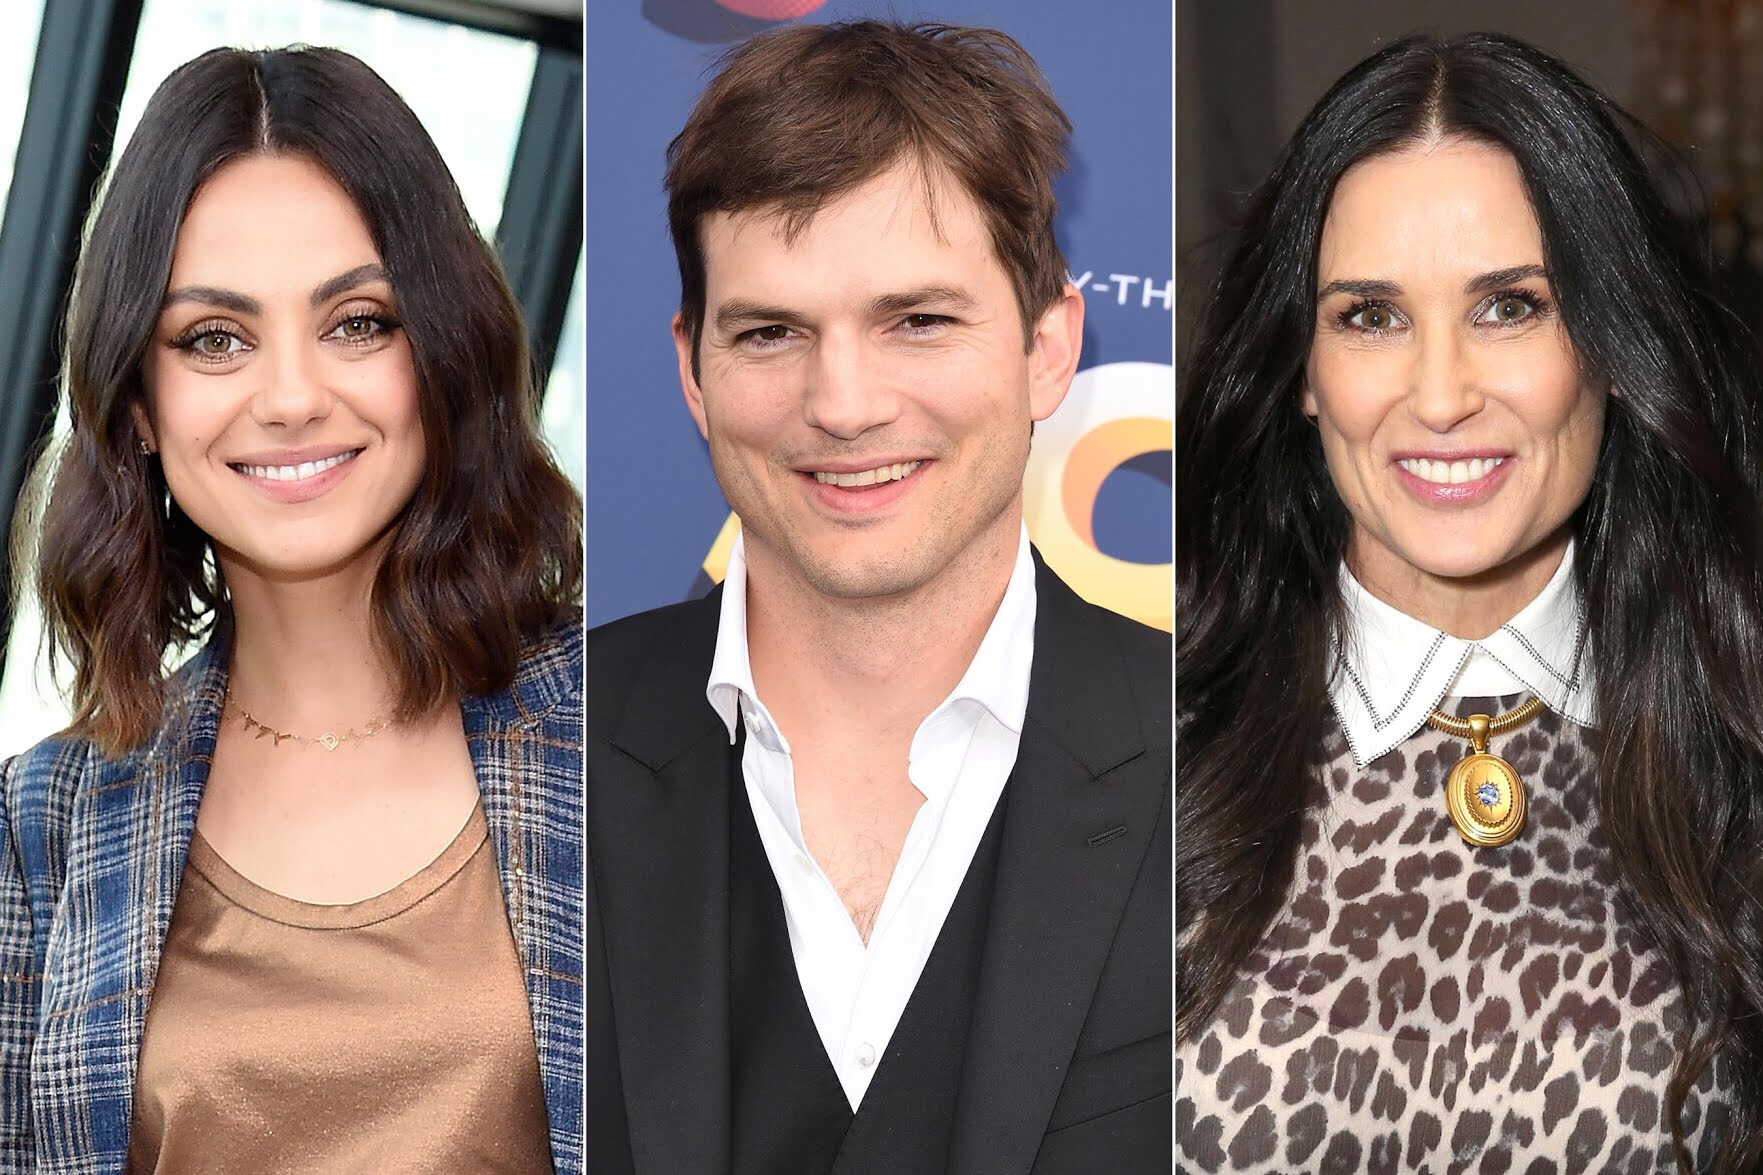 Ashton Kutcher and Mila Kunis are Fighting More and Talking Less